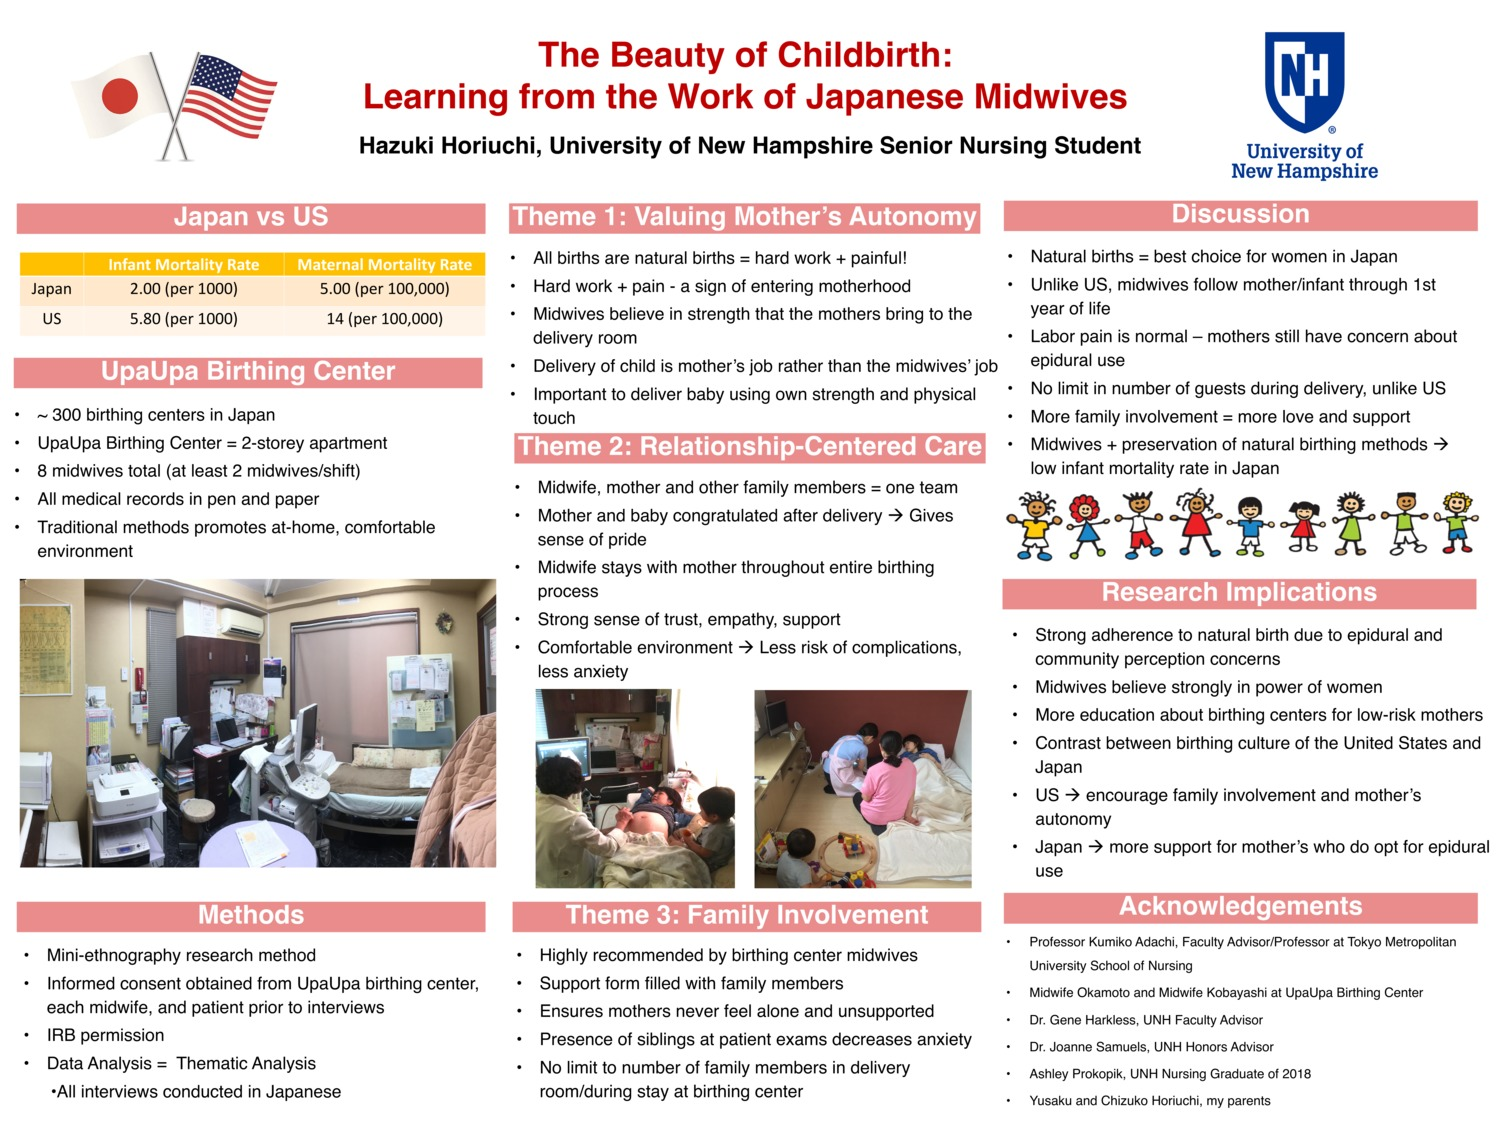 The Beauty Of Childbirth: Learning From The Work Of Japanese Midwives by hh1009